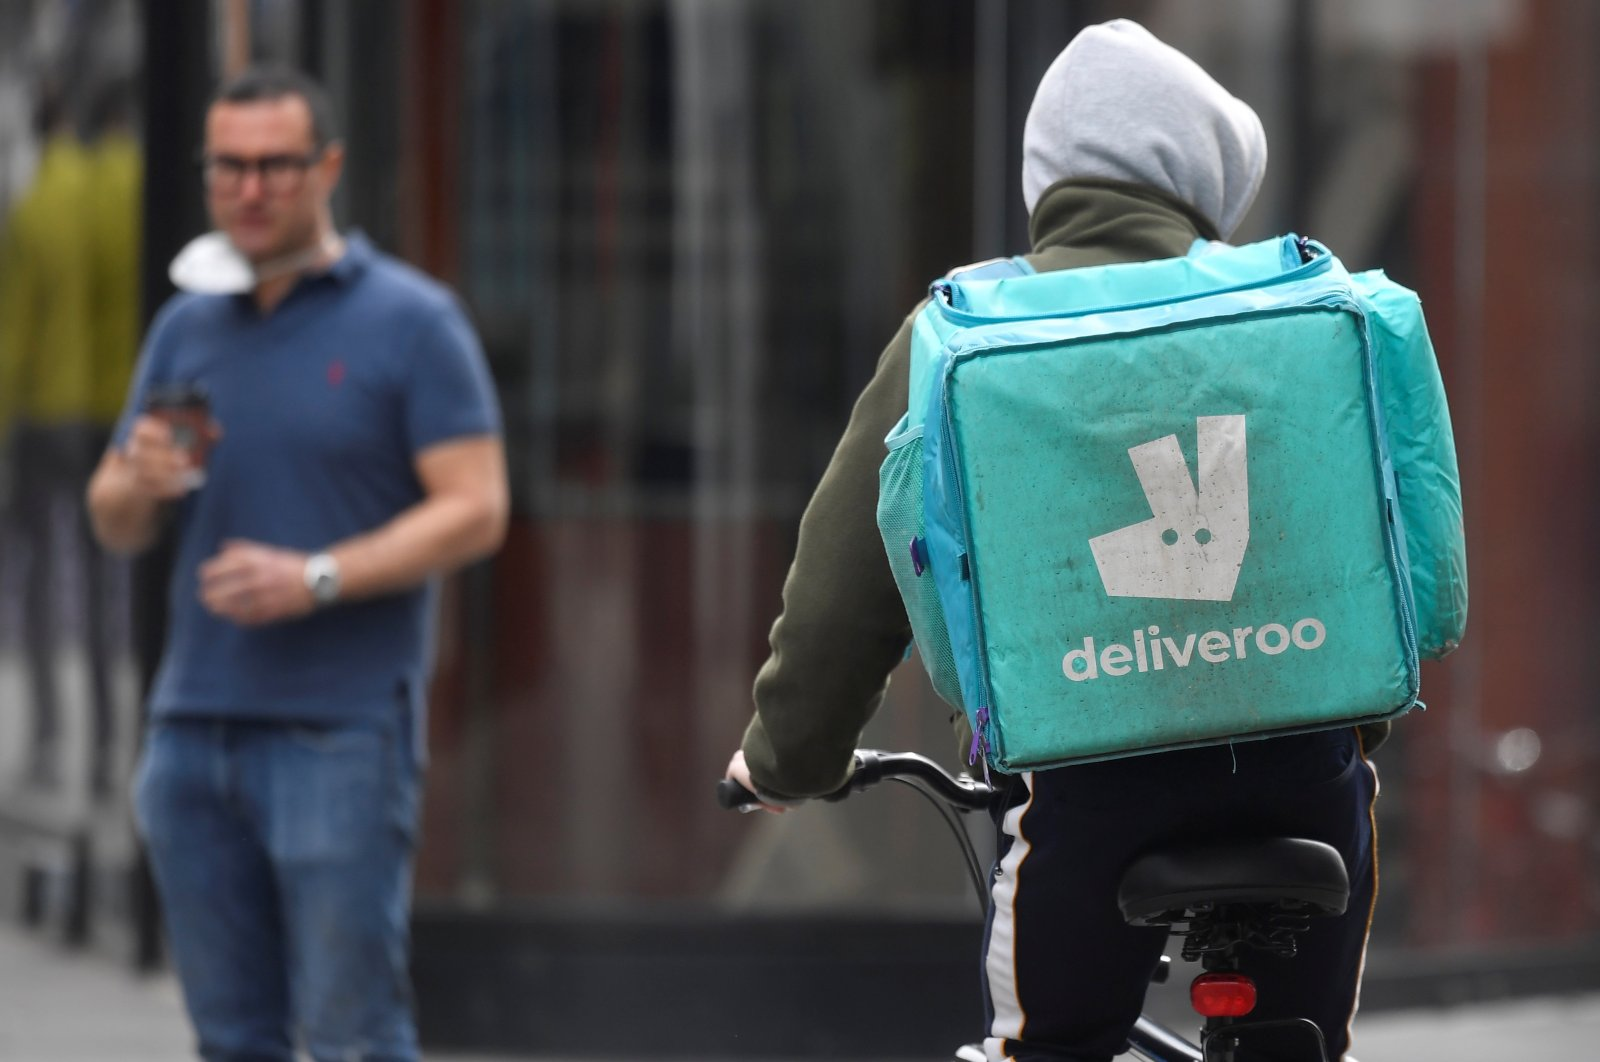 A Deliveroo delivery rider cycles in London, Britain, March 31, 2021. (REUTERS Photo)